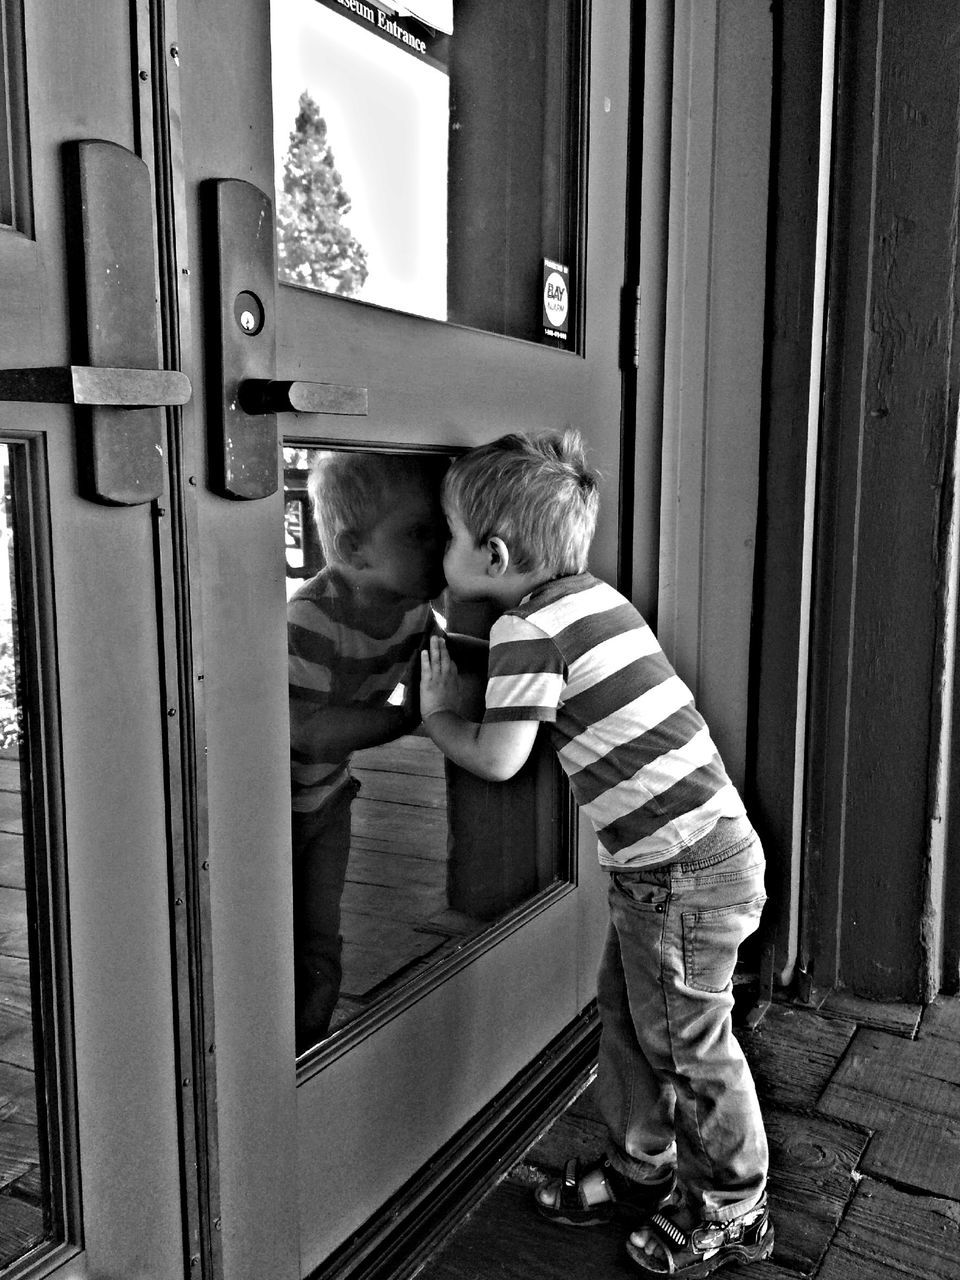 childhood, real people, full length, two people, door, baby, day, babyhood, lifestyles, togetherness, boys, leisure activity, standing, indoors, bonding, people